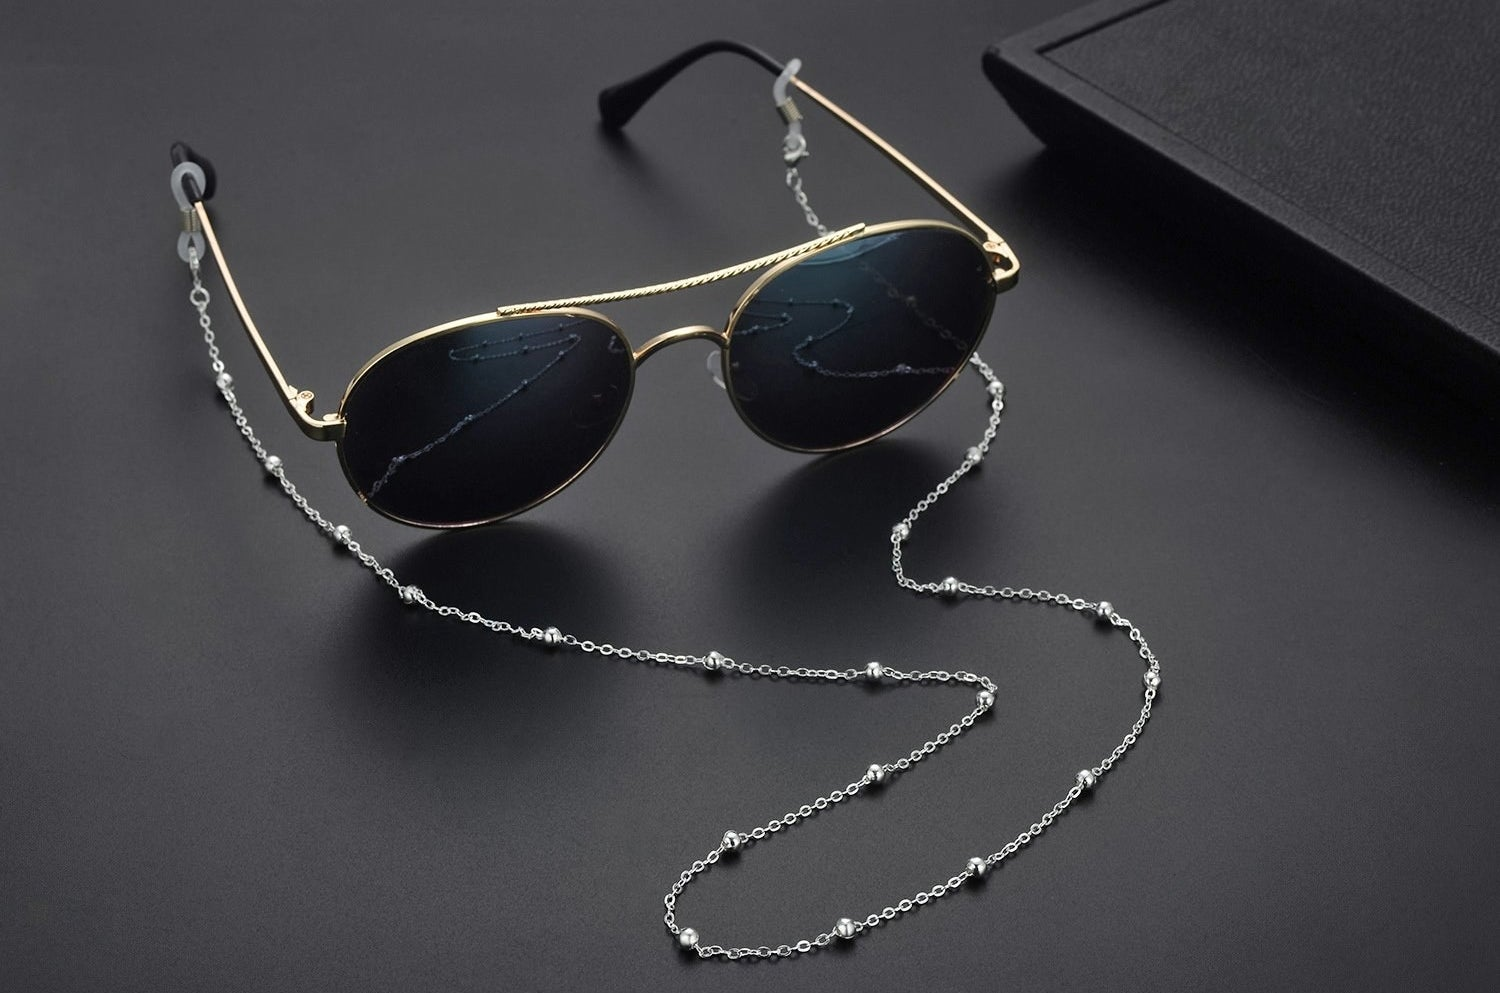 Sunglasses with the chain attached to the arms